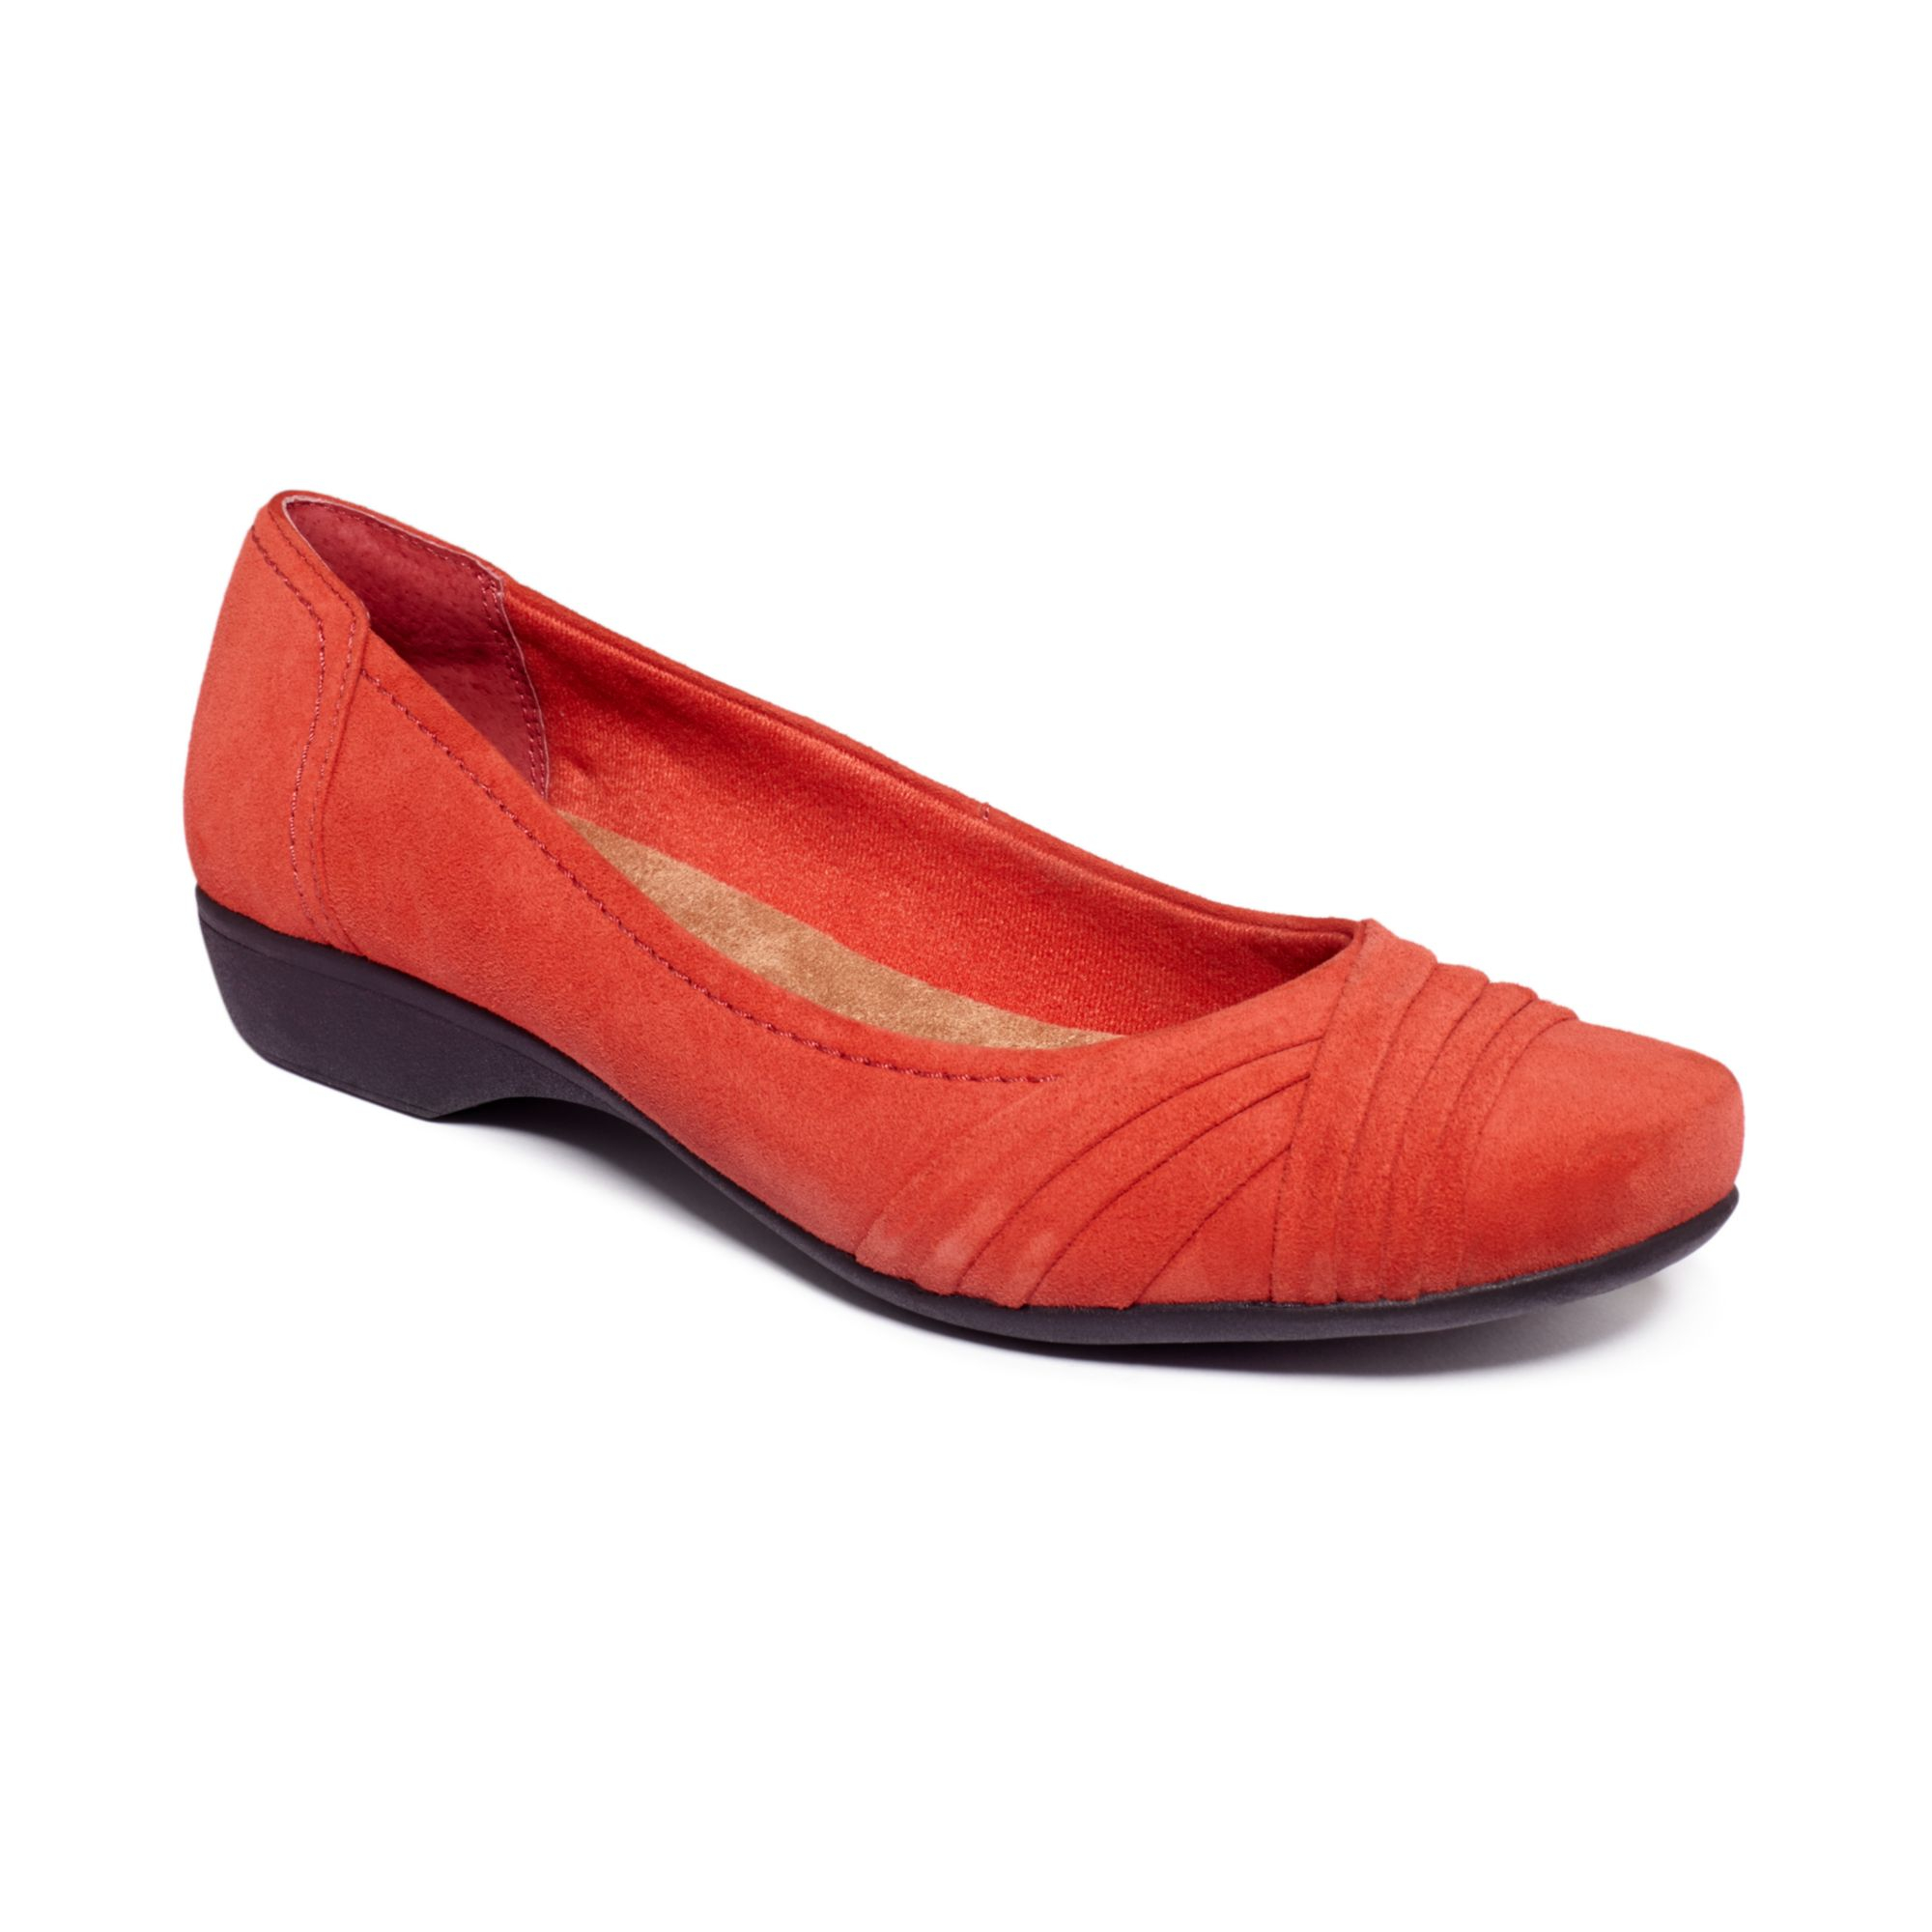 The Red Shoes Of The Duchhes